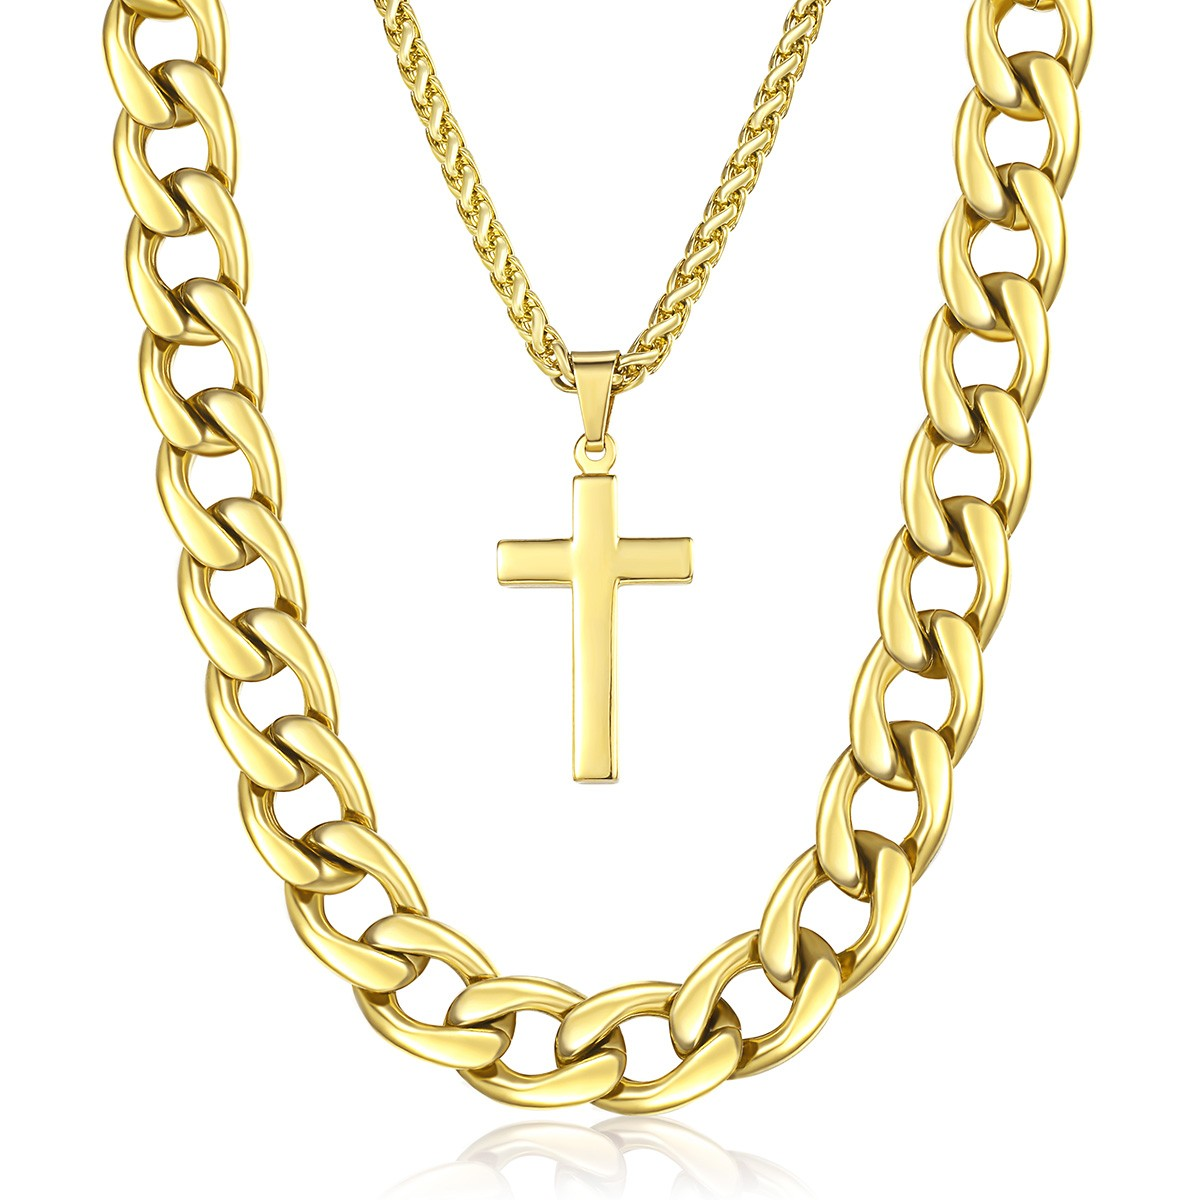 Cross pendant necklace mens double chain stainless steel curb wheat image is loading cross pendant necklace mens double chain stainless steel aloadofball Image collections